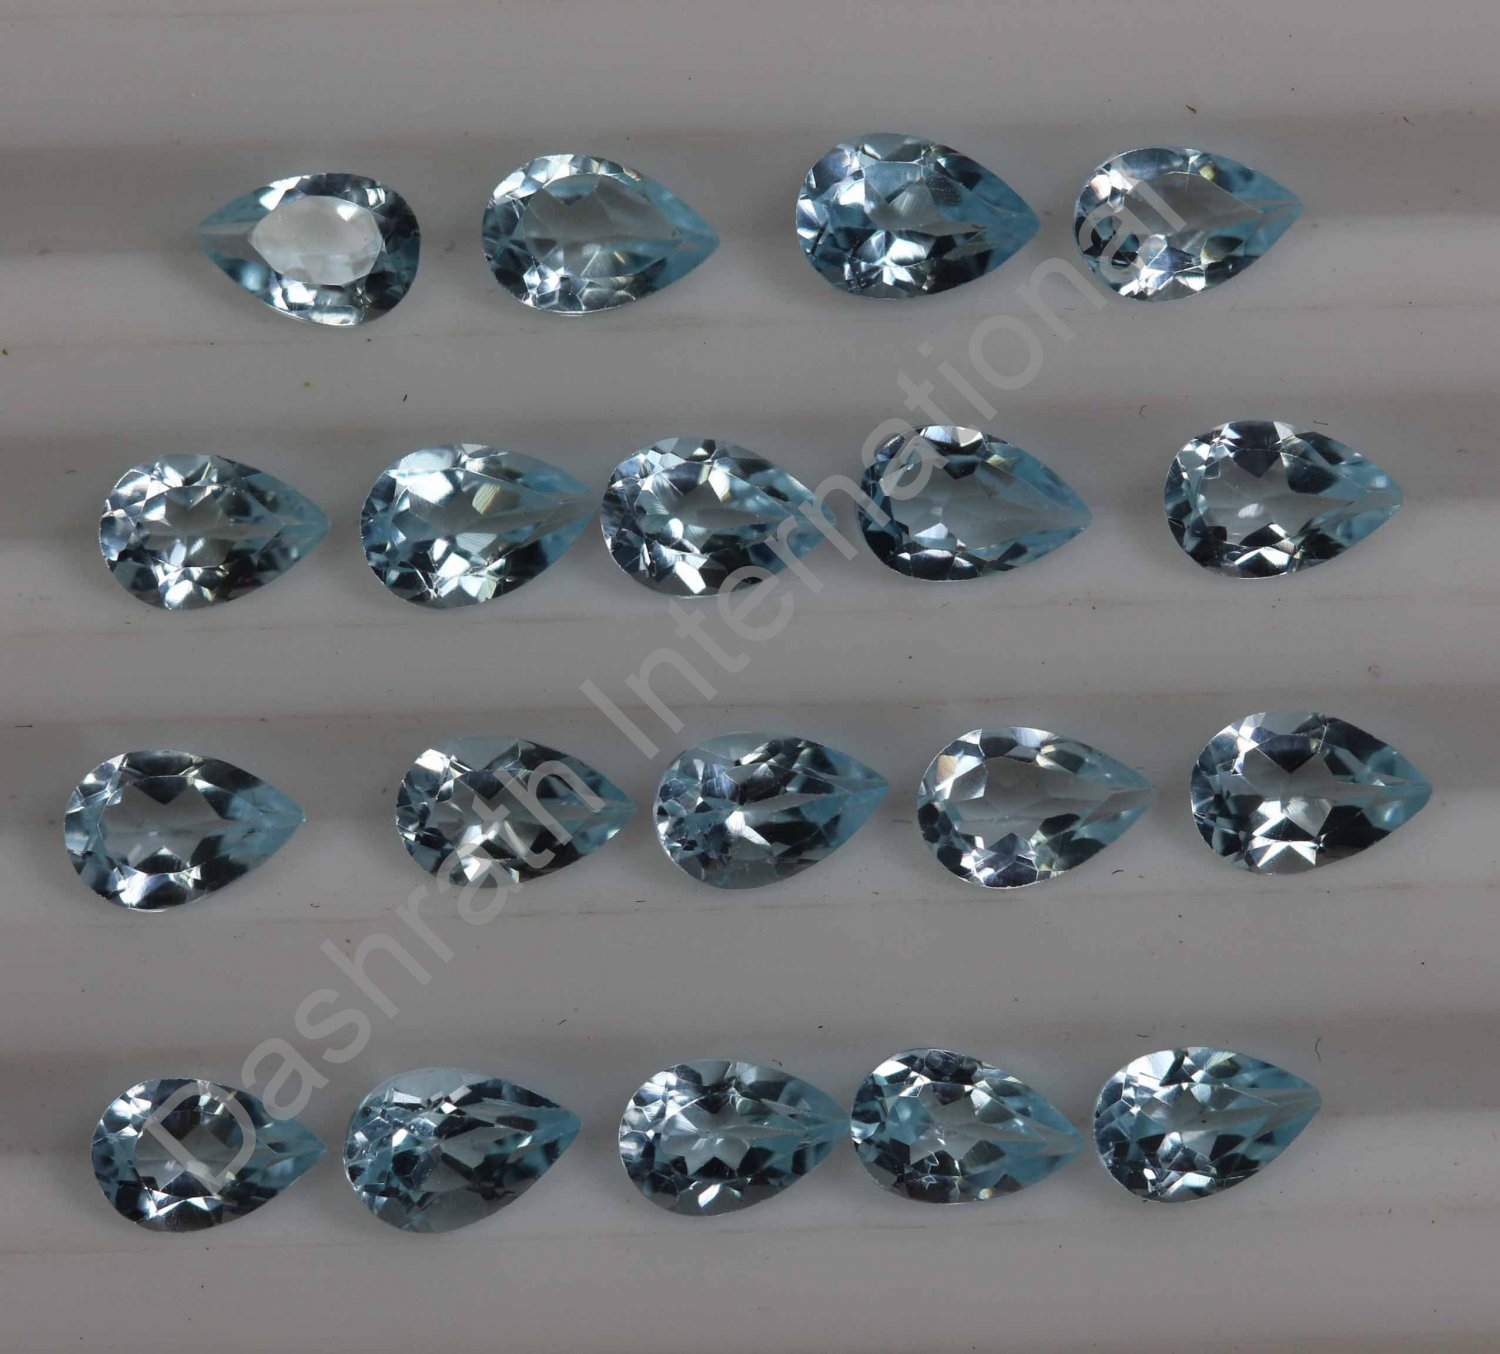 5x3mm  Natural Sky Blue Topaz Faceted Cut Pear 5 Pieces Lot  Top Quality Loose Gemstone